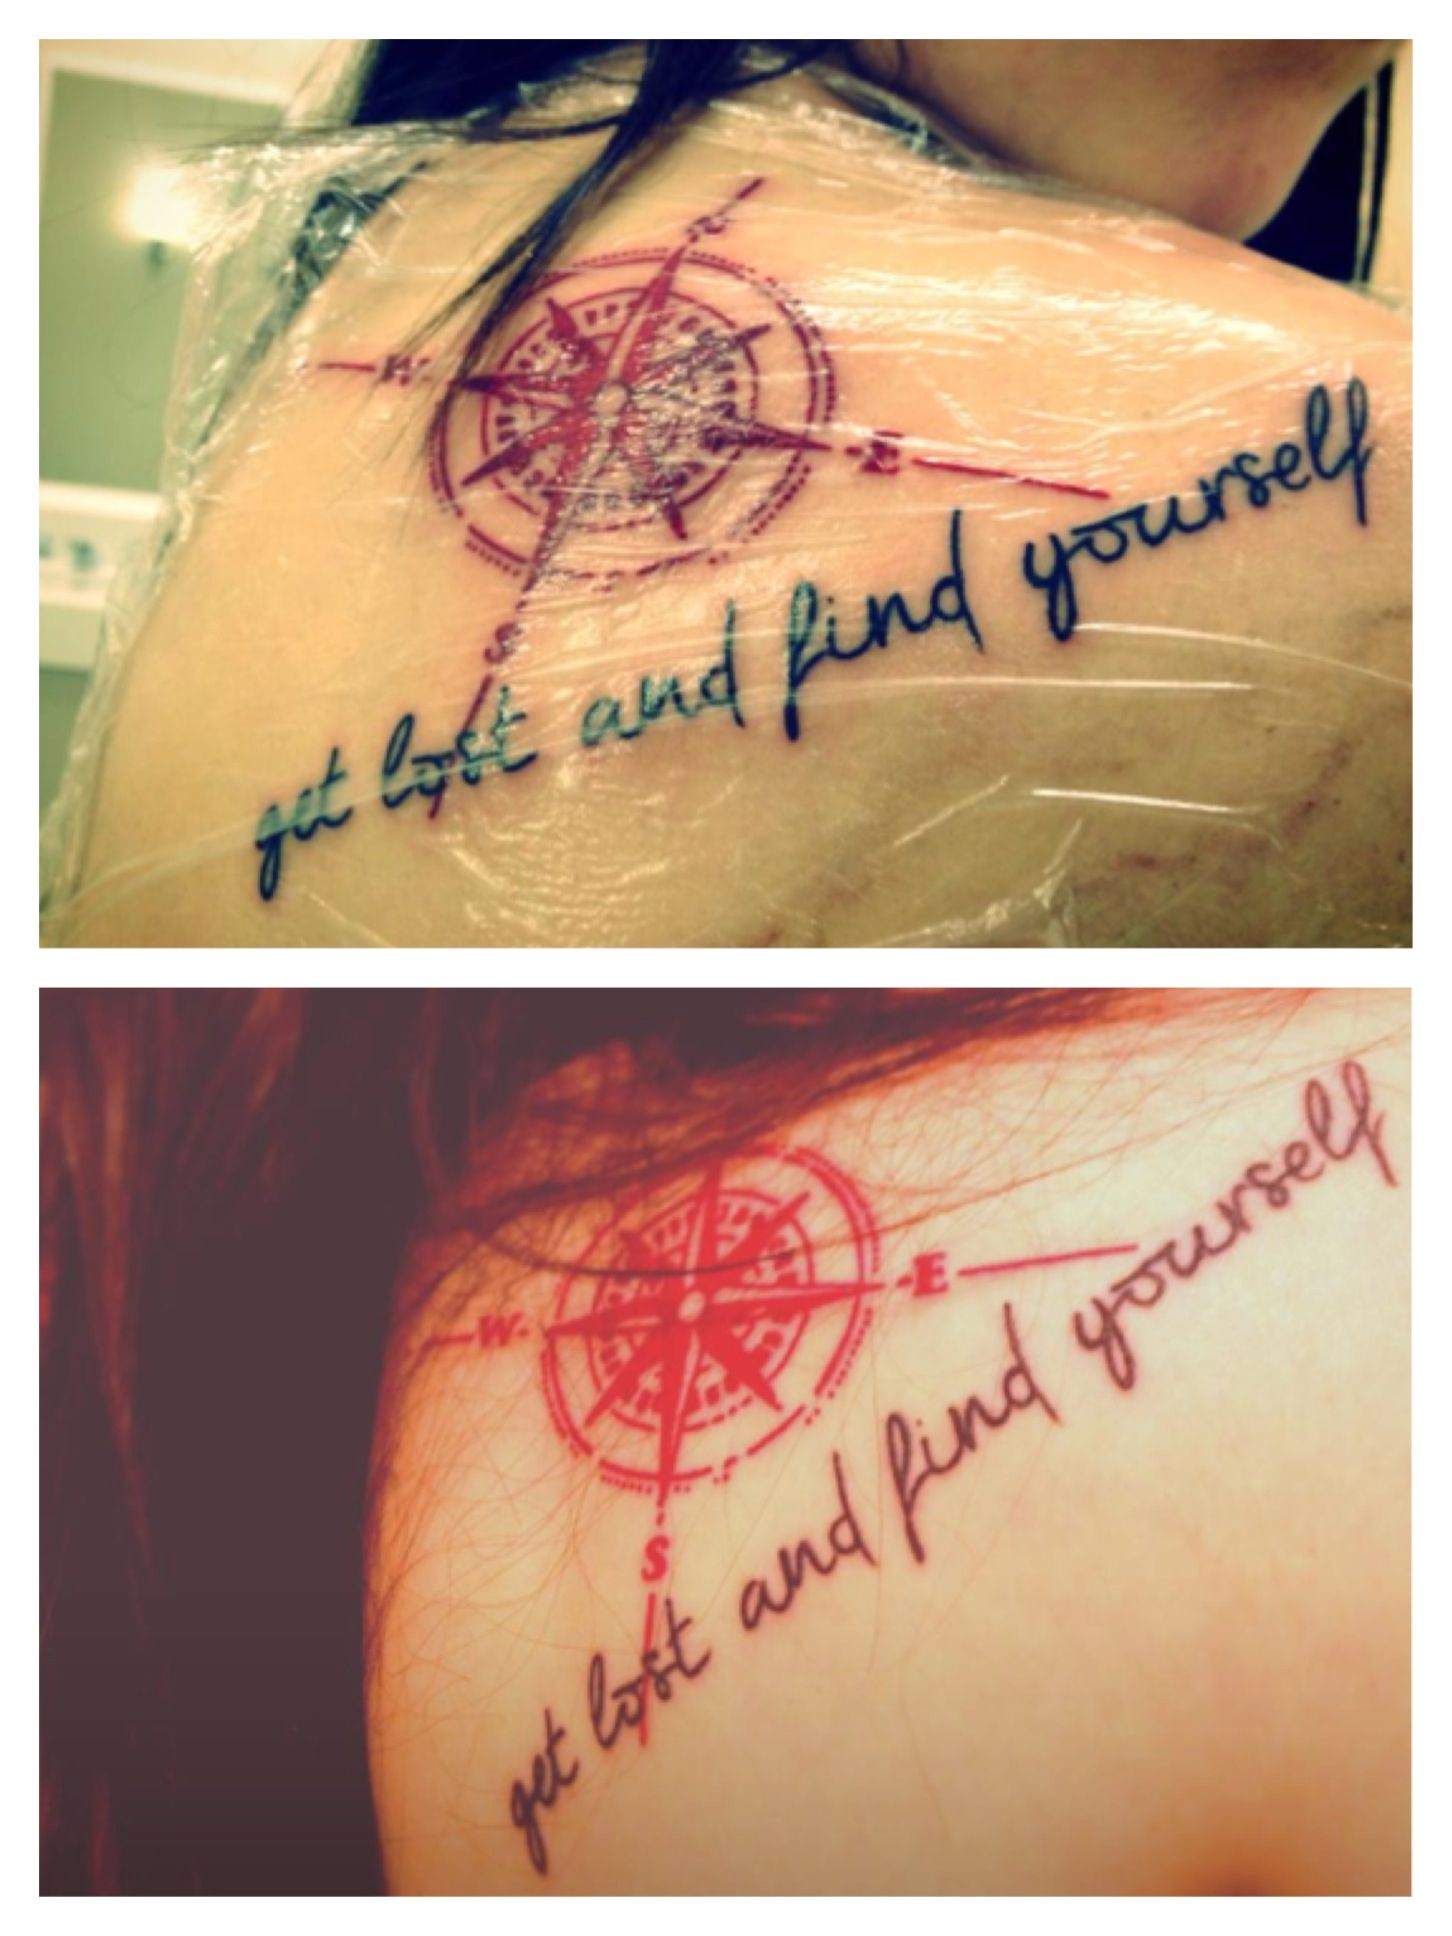 Get Lost And Find Yourself Tattoo Tattoo Quotes Tattoos